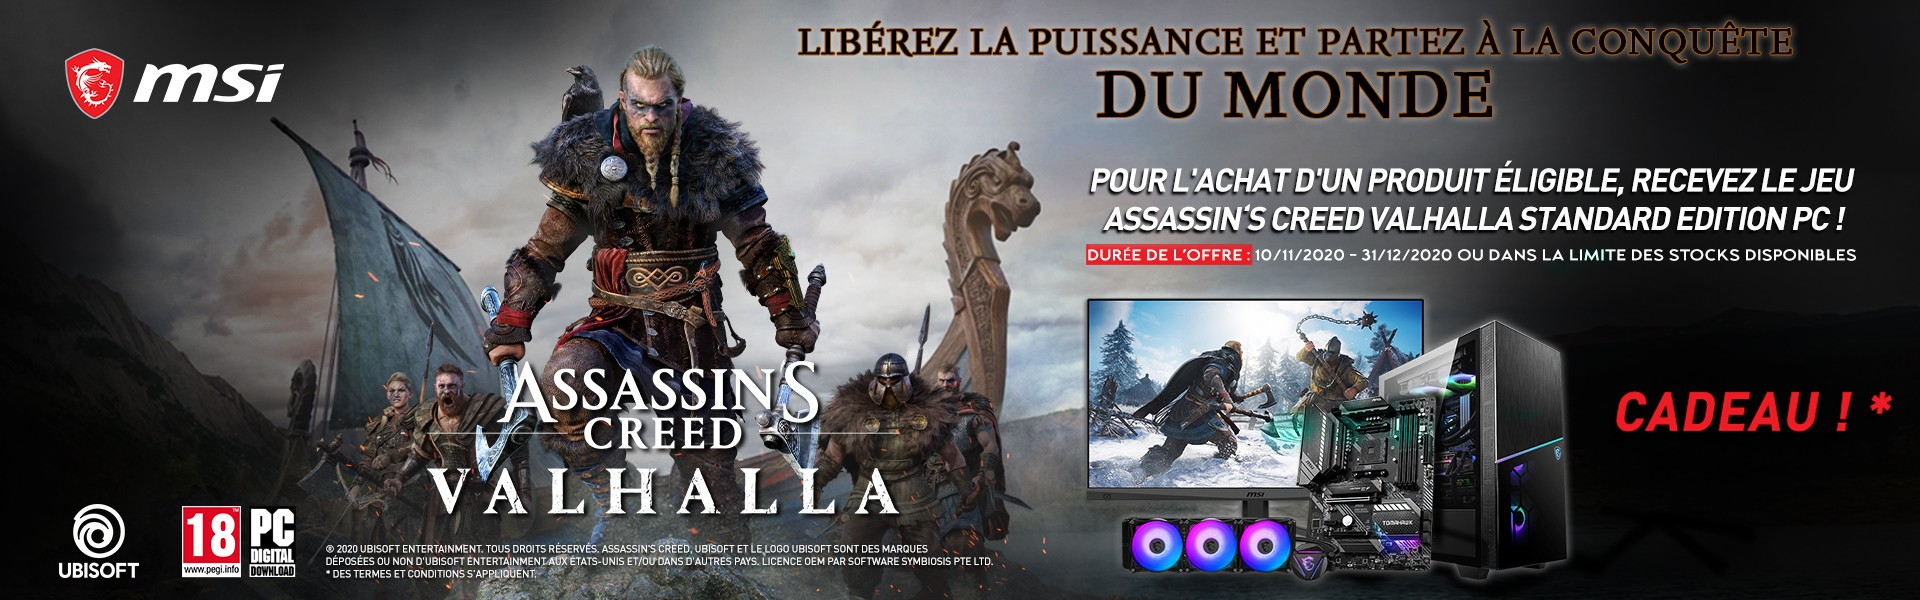 Offre MSI Assassin's Creed Valhalla